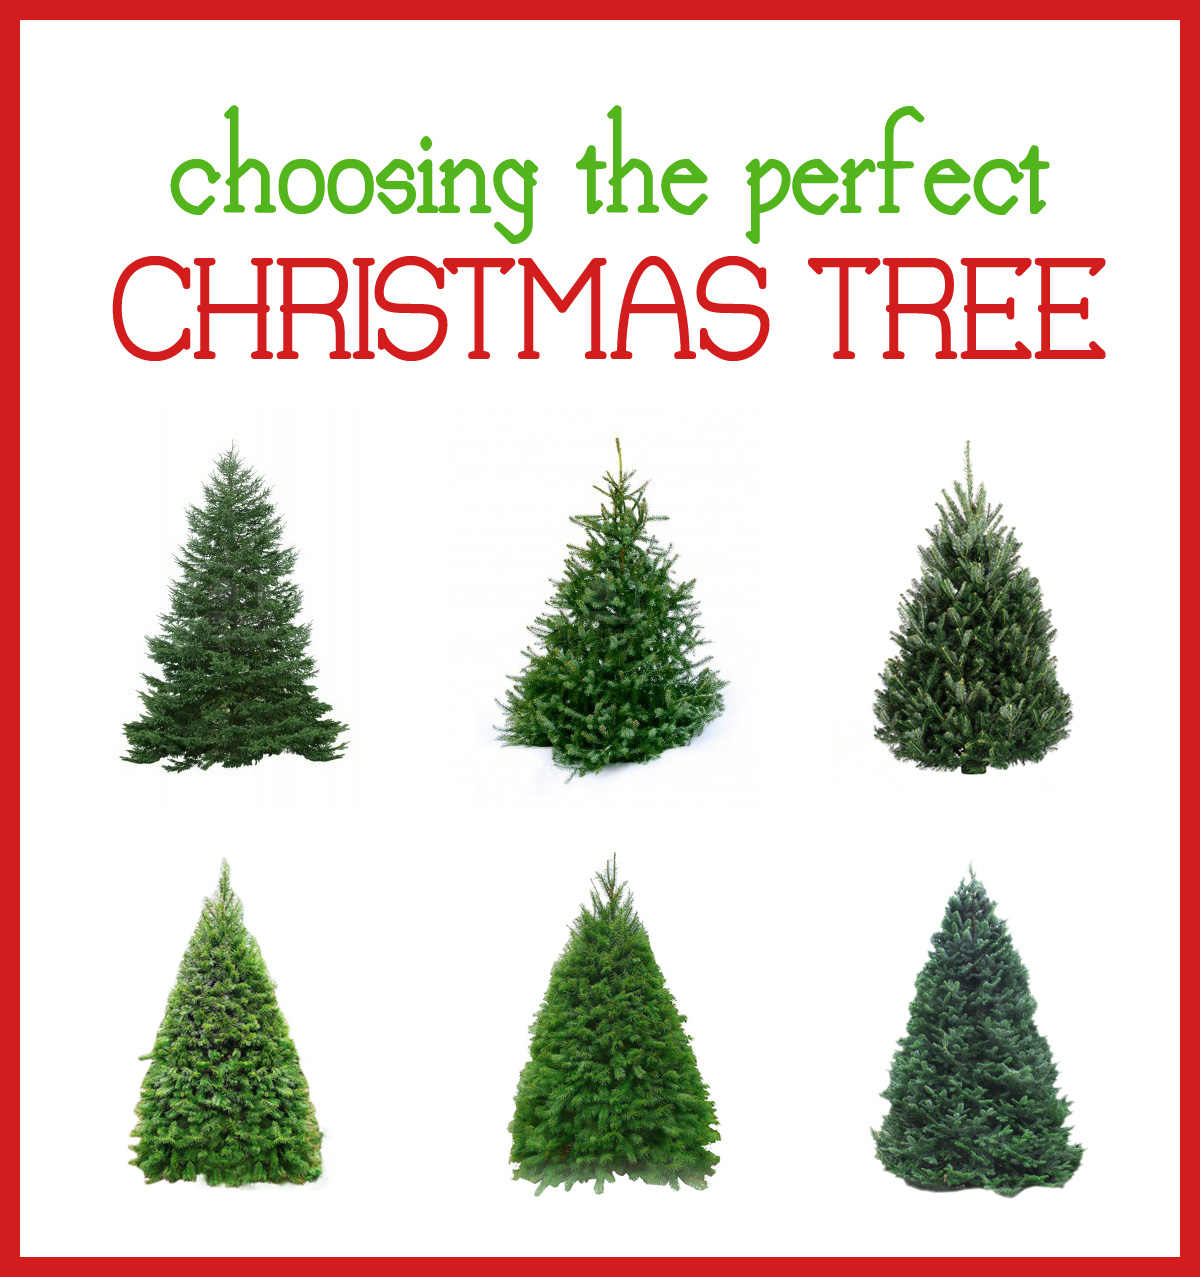 the perfect tree - Type Of Christmas Trees